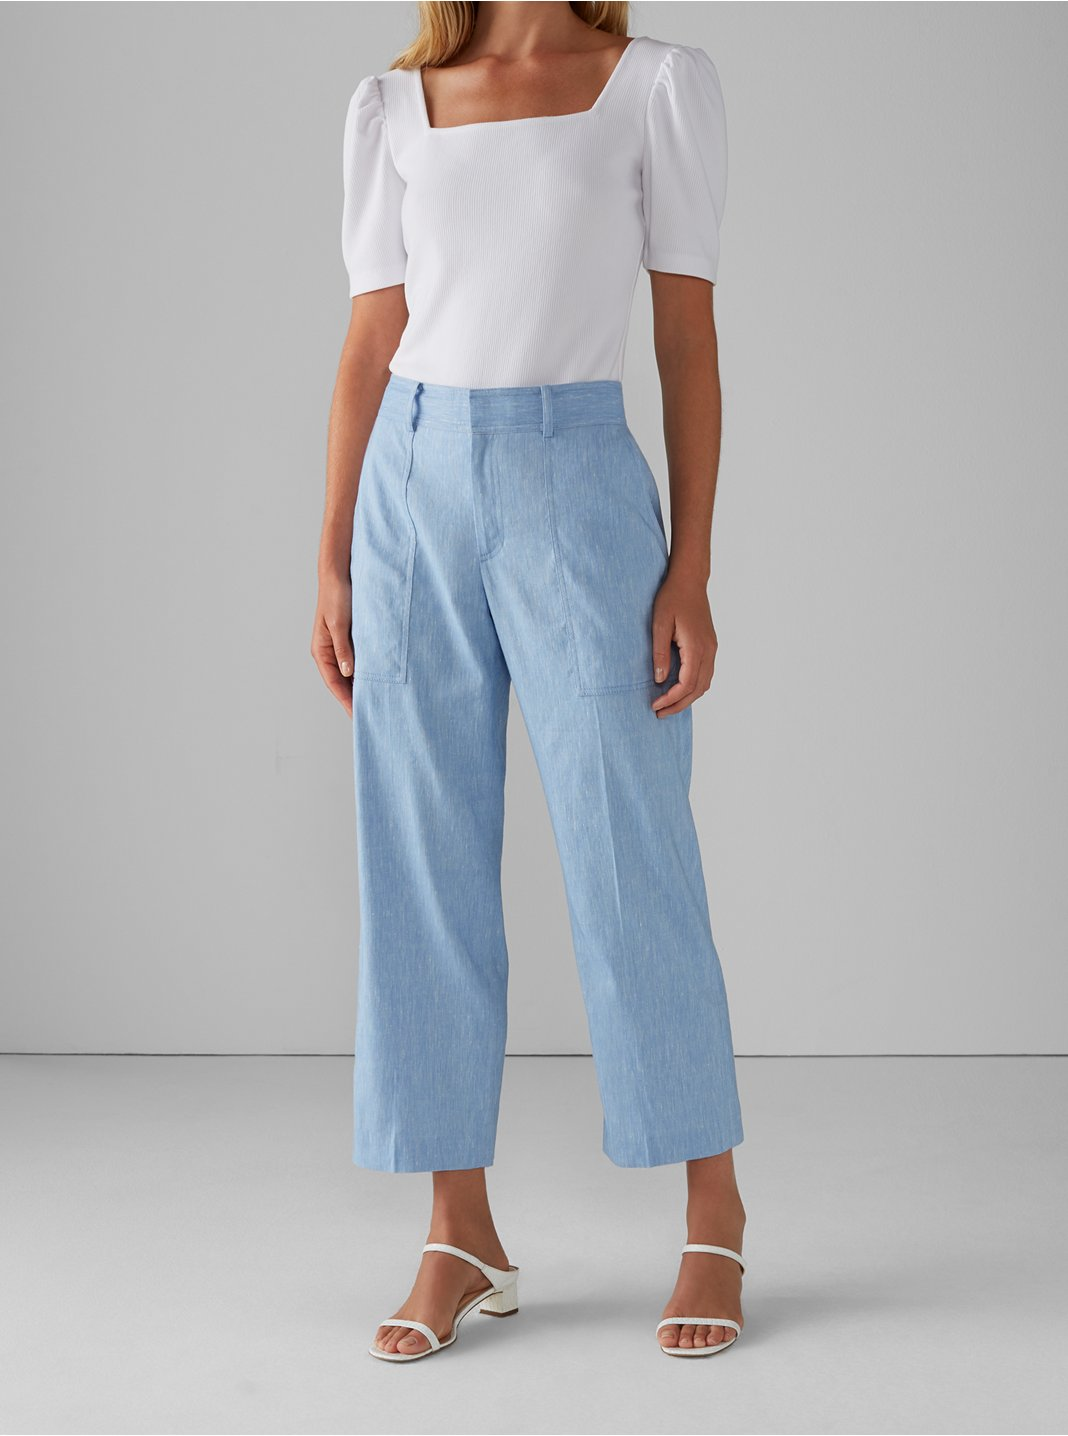 Made in USA Tough Cookies Womens ICY Velvet Long Pants